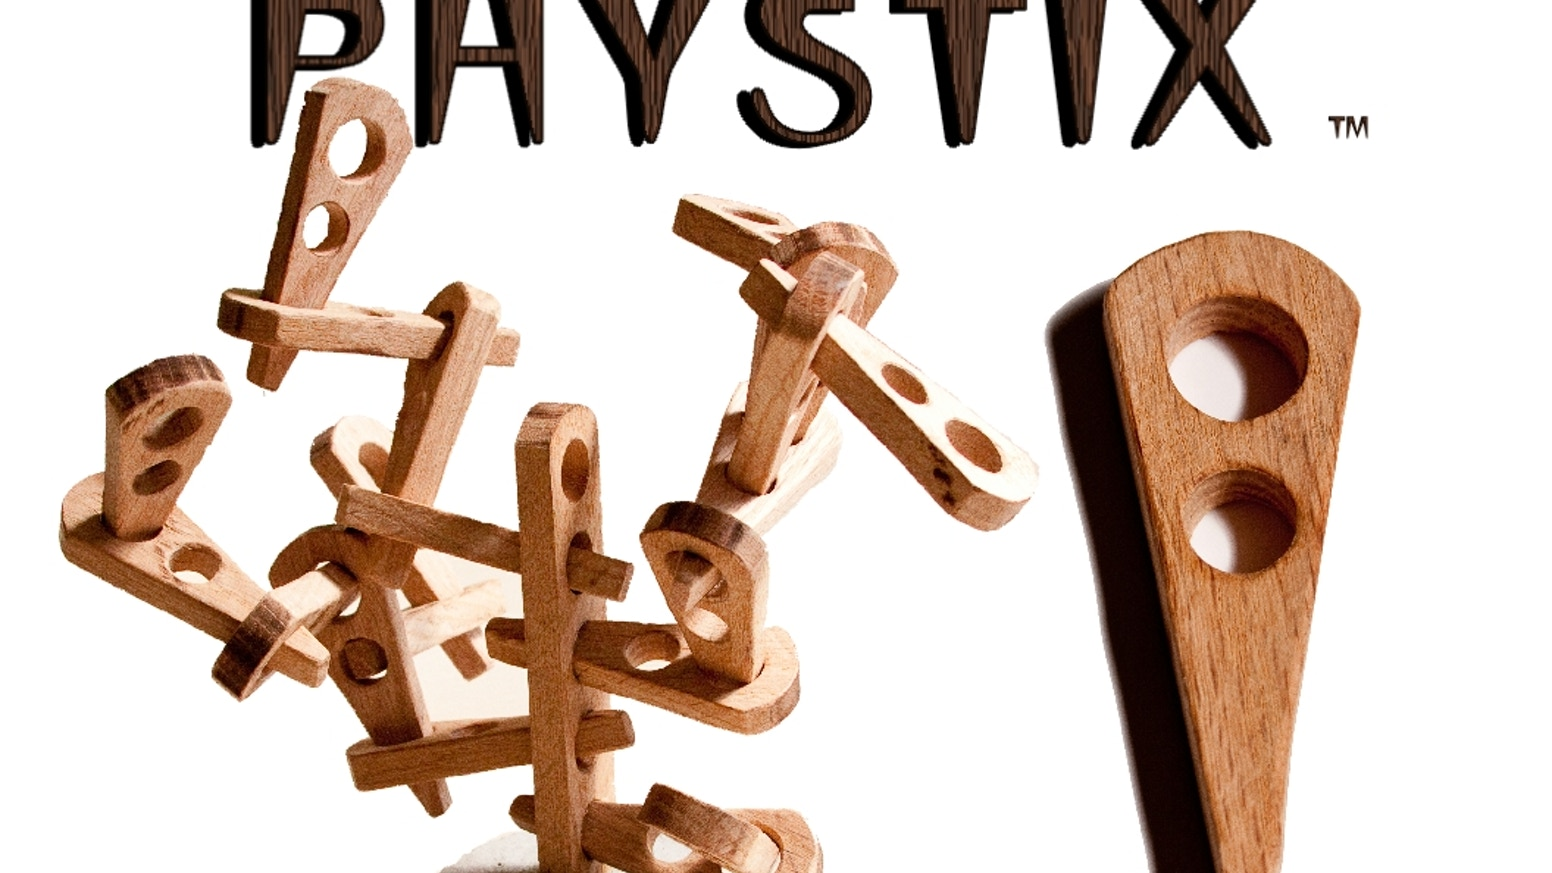 Phystix A Game Of Skill Strategy And Balance By Mutant Minds